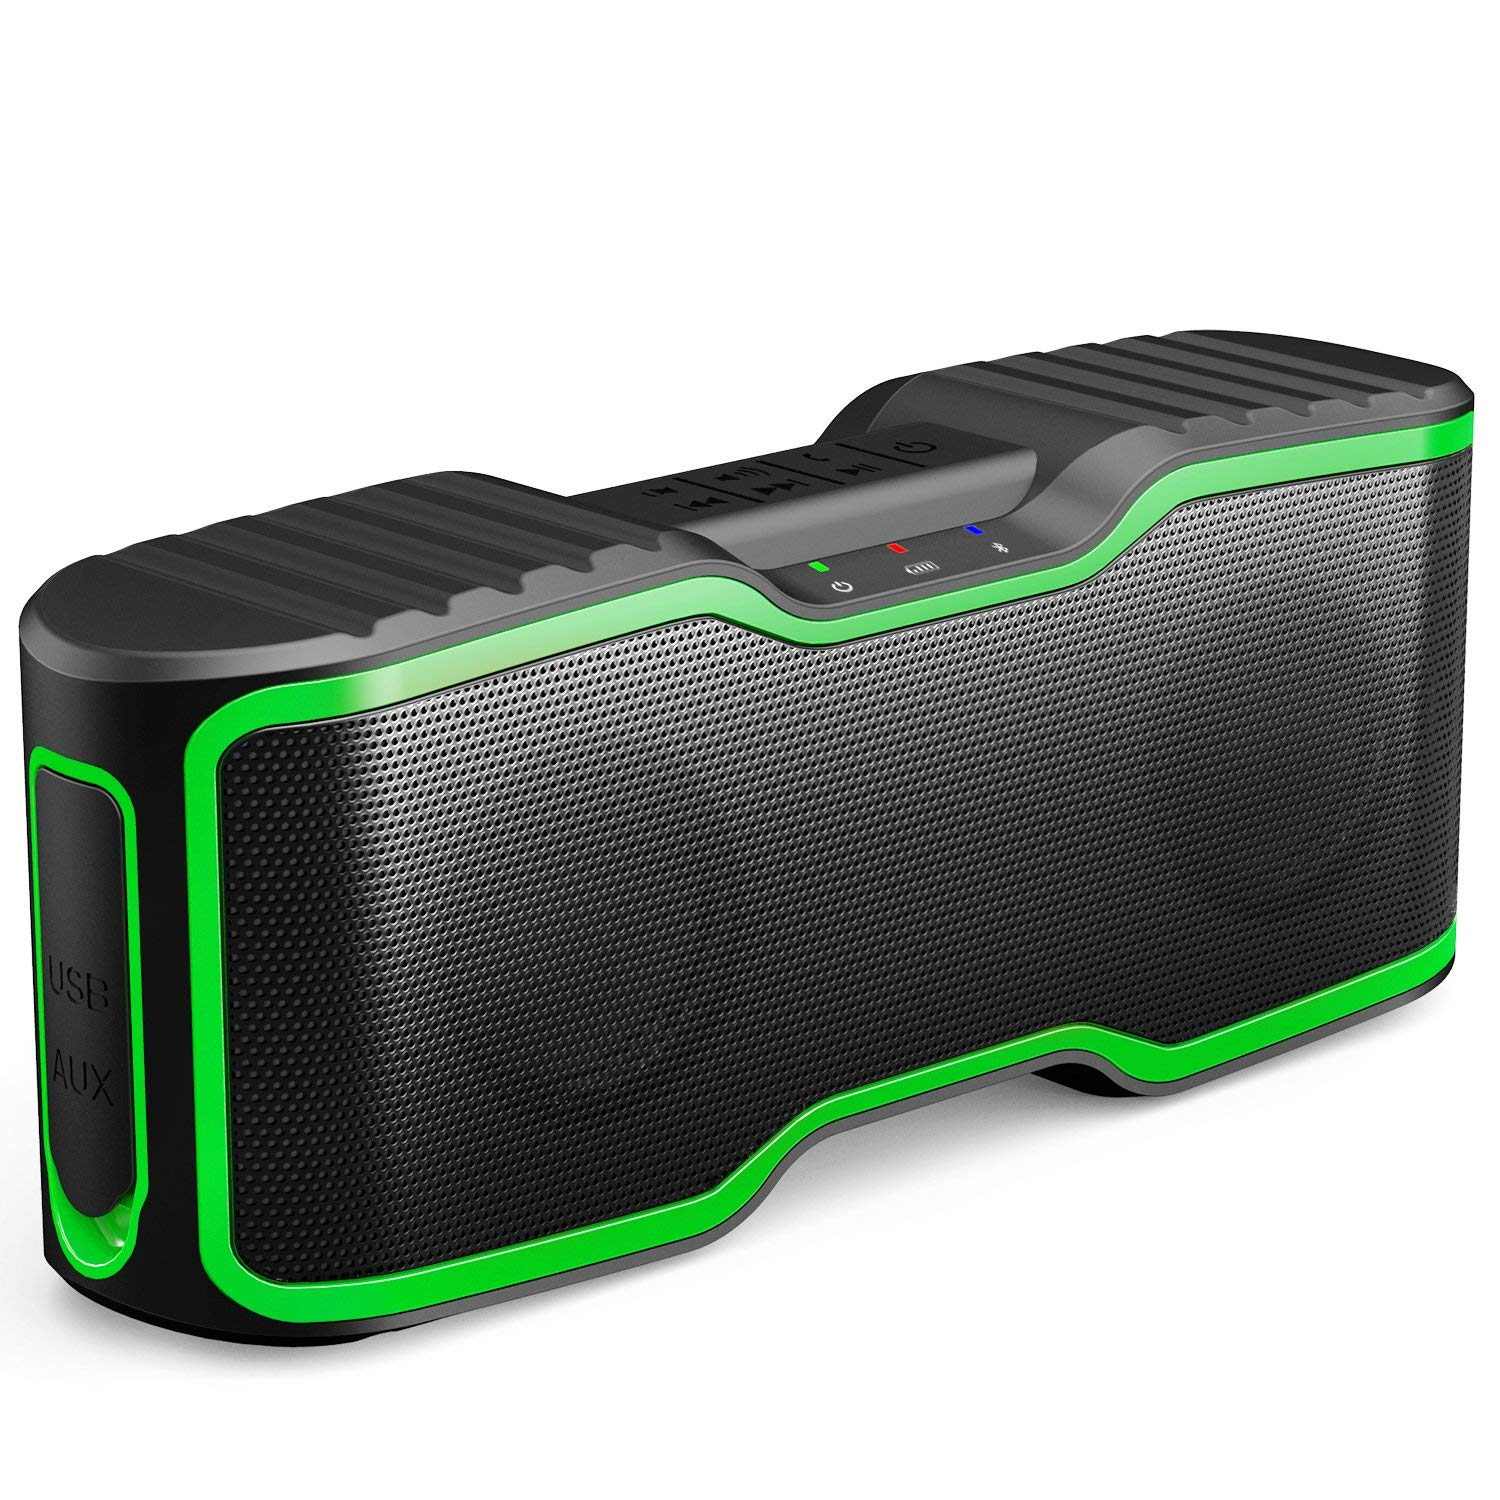 AOMAIS Sport II Portable Wireless Bluetooth Speakers 4.0 with Waterproof IPX7, 20W Bass Sound, Stereo Pairing, Durable Design for Backyard, Outdoors, Travel, Pool, Home Party